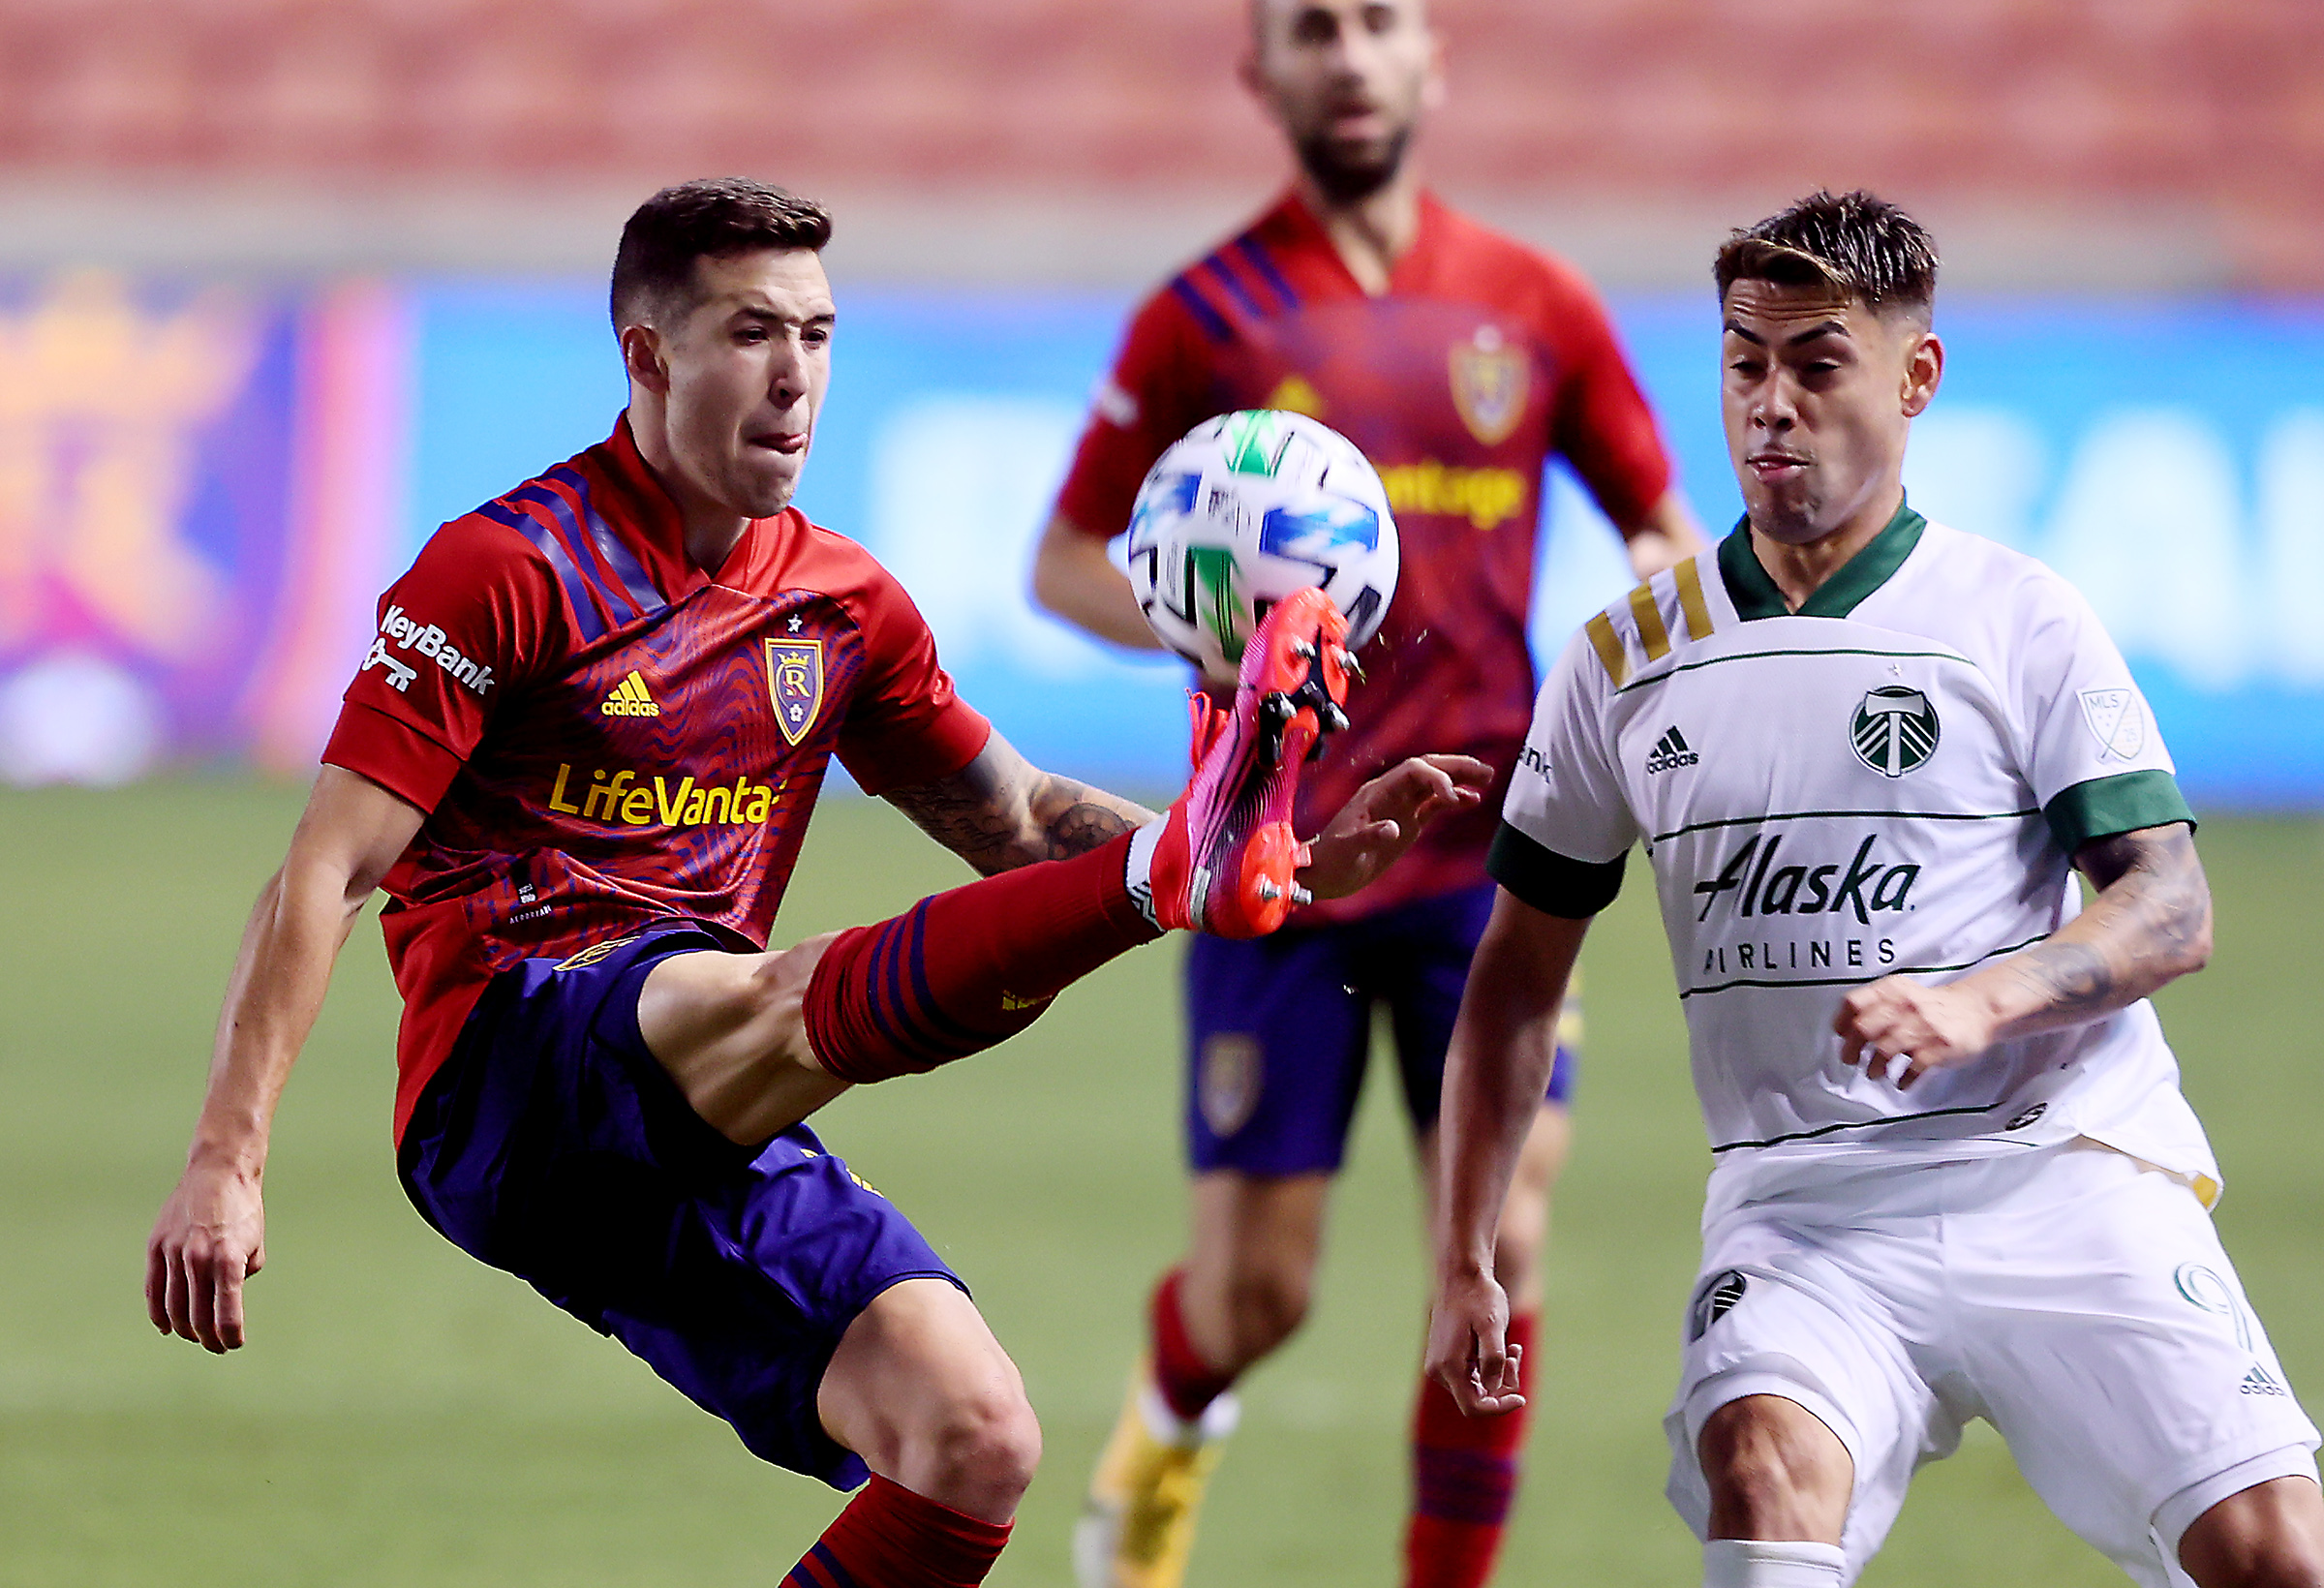 Real Salt Lake defender Aaron Herrera (22) battle Portland Timbers forward Felipe Mora (9) for the ball as RSL and Portland play an MLS soccer game at Rio Tinto Stadium in Sandy on Wednesday, Oct. 14, 2020. RSL won 2-1.